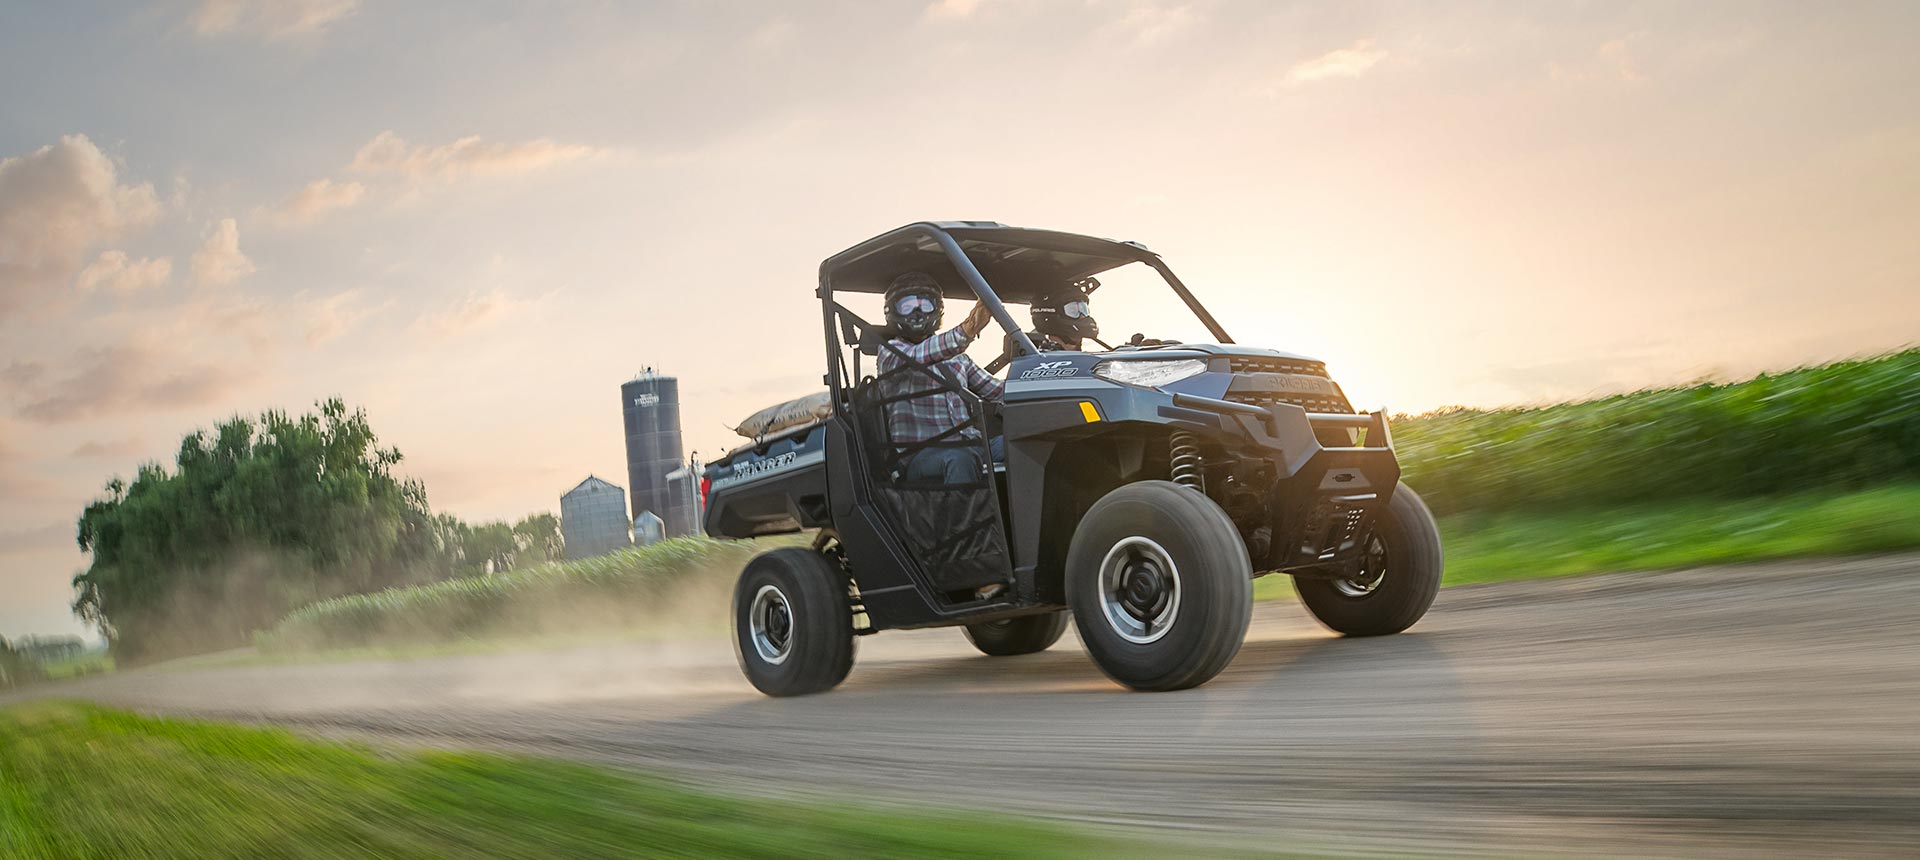 2019 Polaris Ranger XP 1000 EPS in Fayetteville, Tennessee